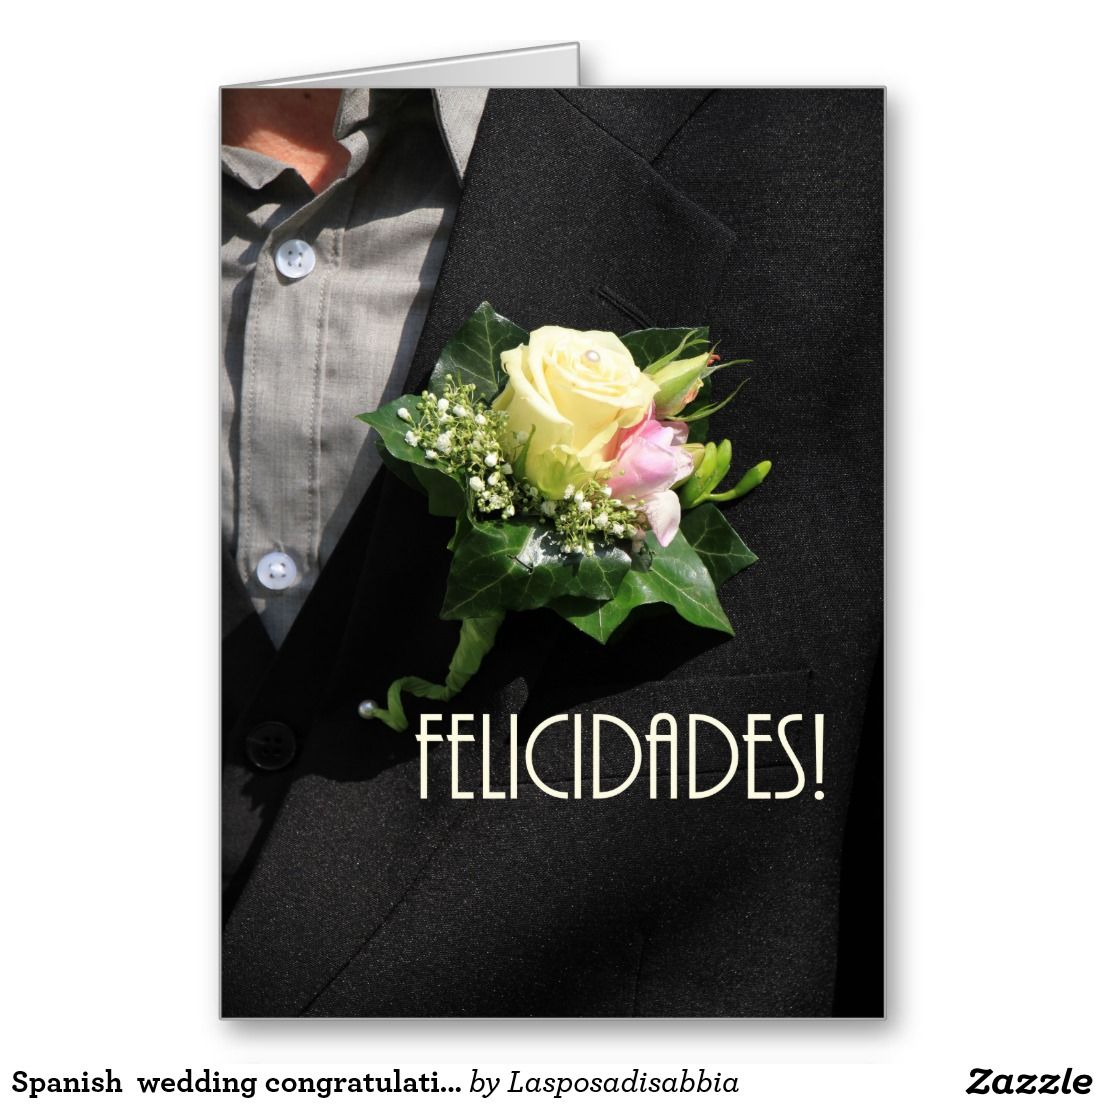 zazzle wedding invitations promo code%0A Spanish wedding congratulations stationery note card